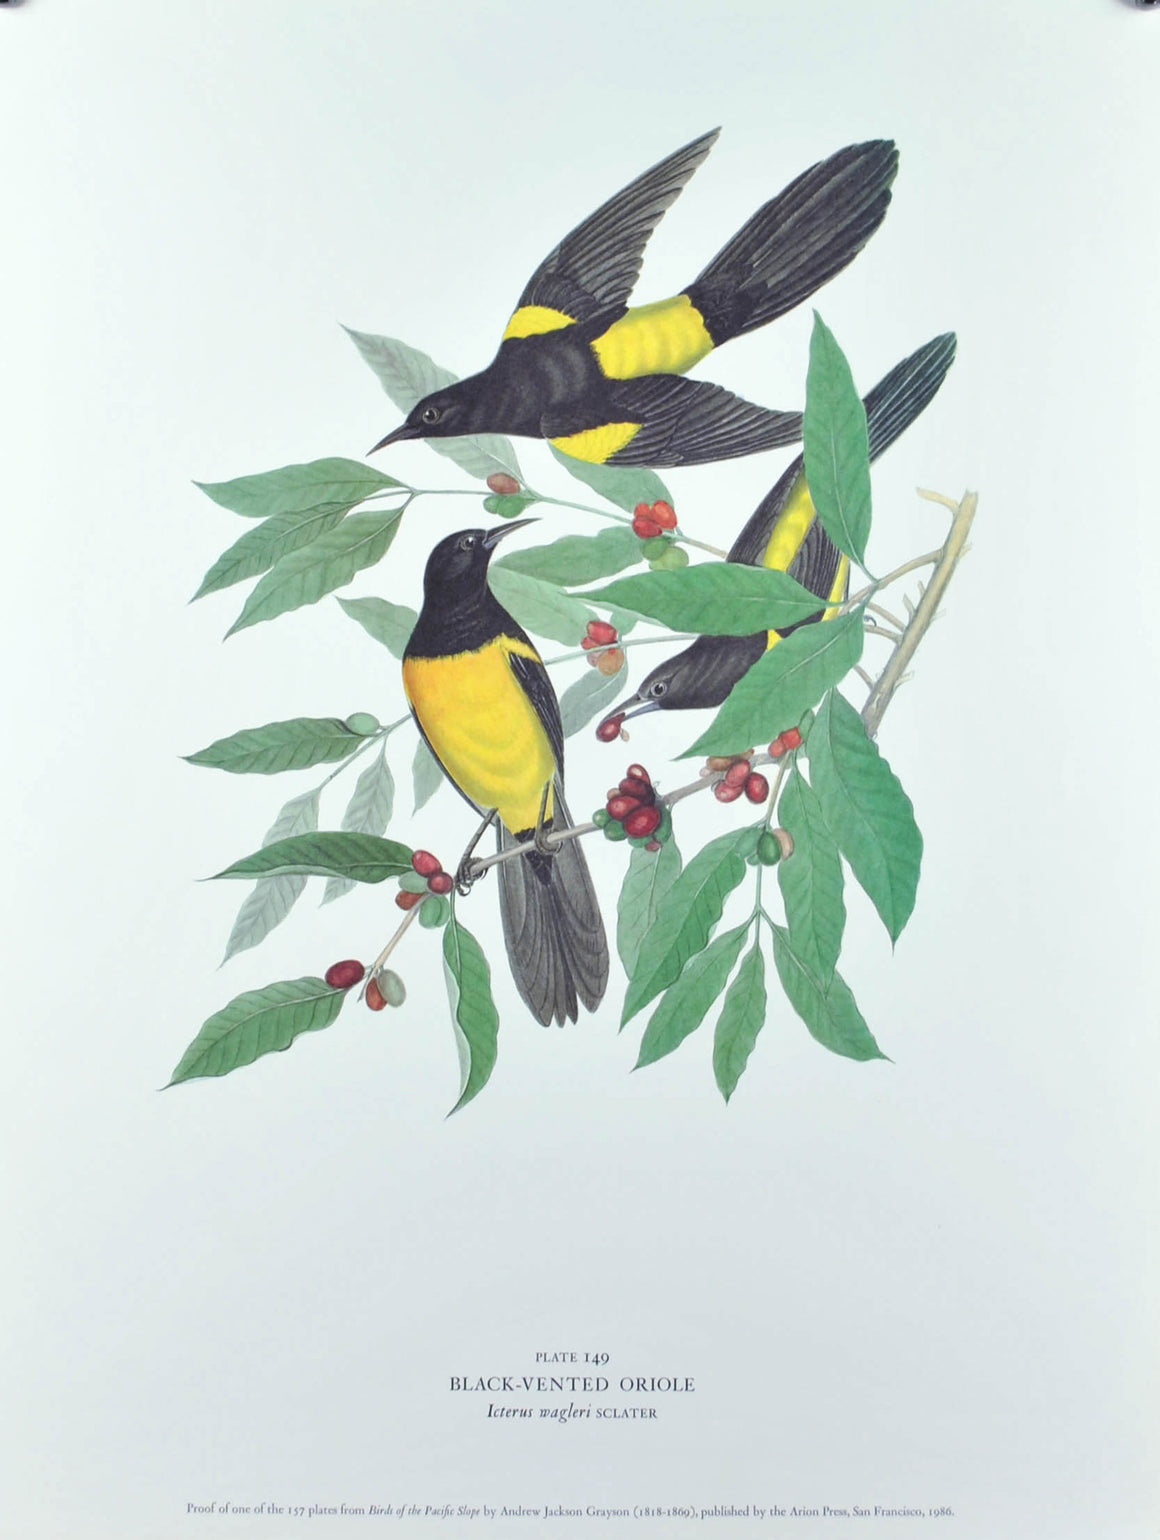 Black-Vented Oriole Andrew Jackson Grayson Bird Print 1986 Birds of the Pacific